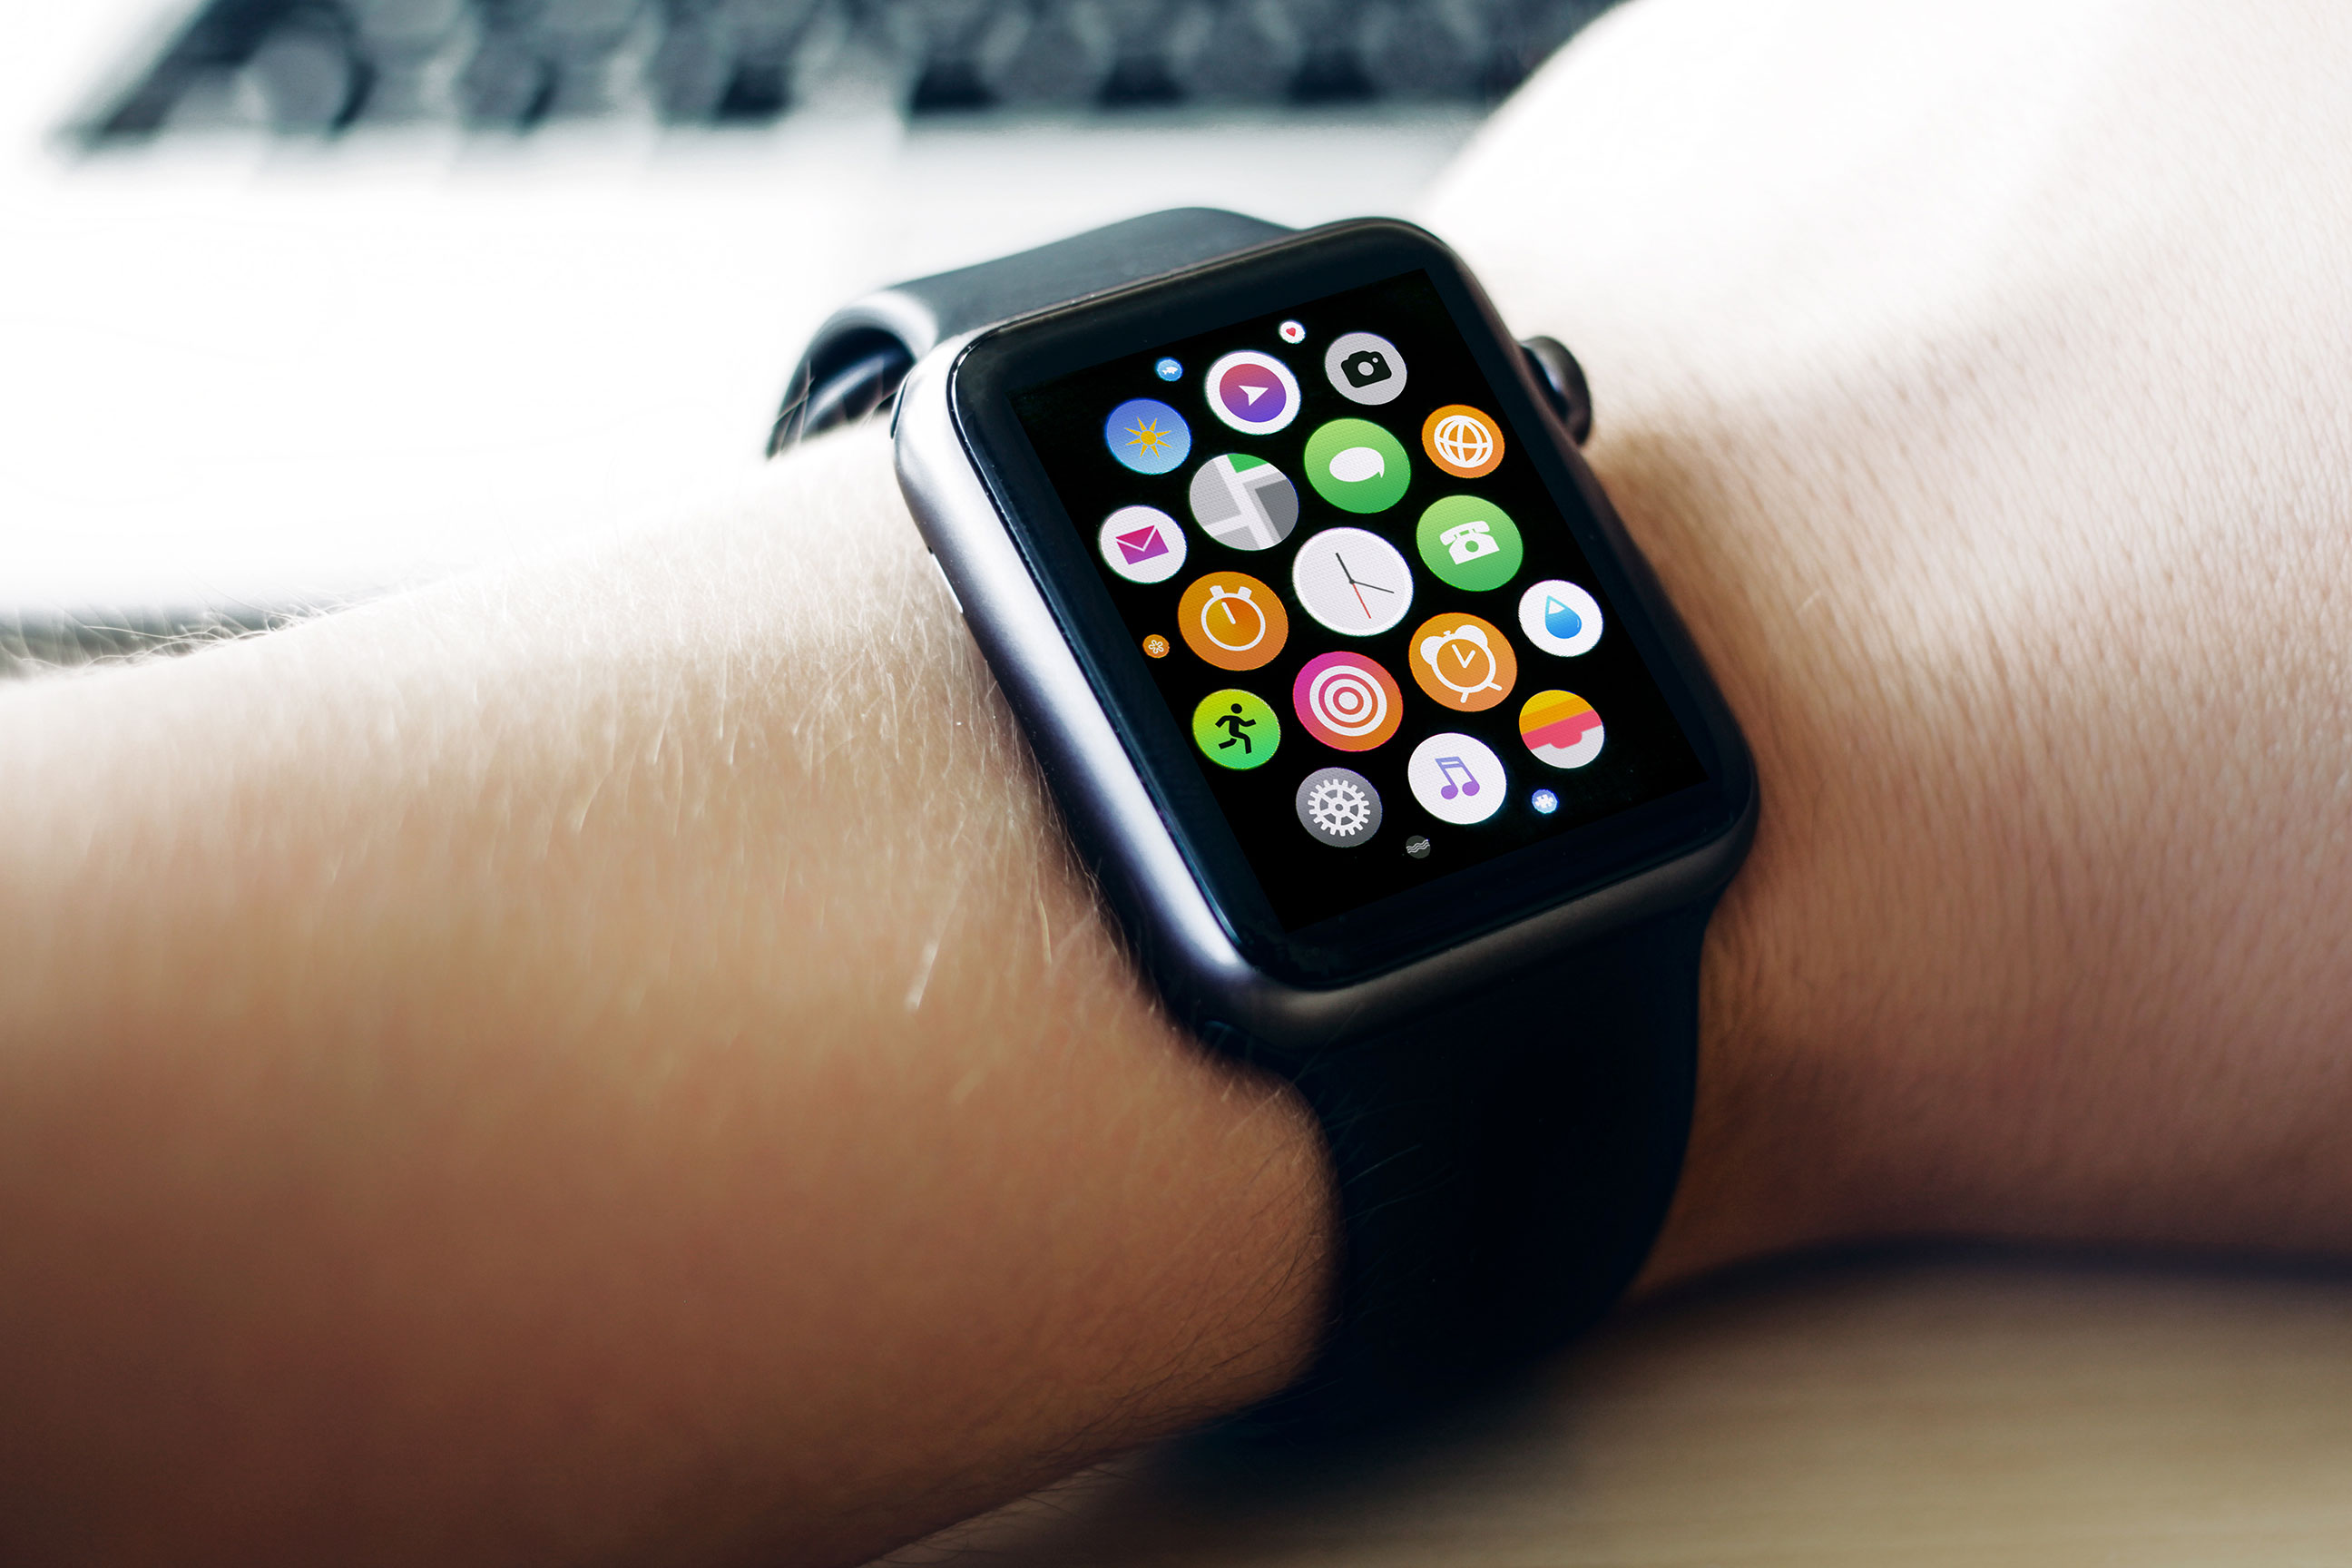 Watch Out for Wearables: New Security Risks Posed by Wearables & IoT